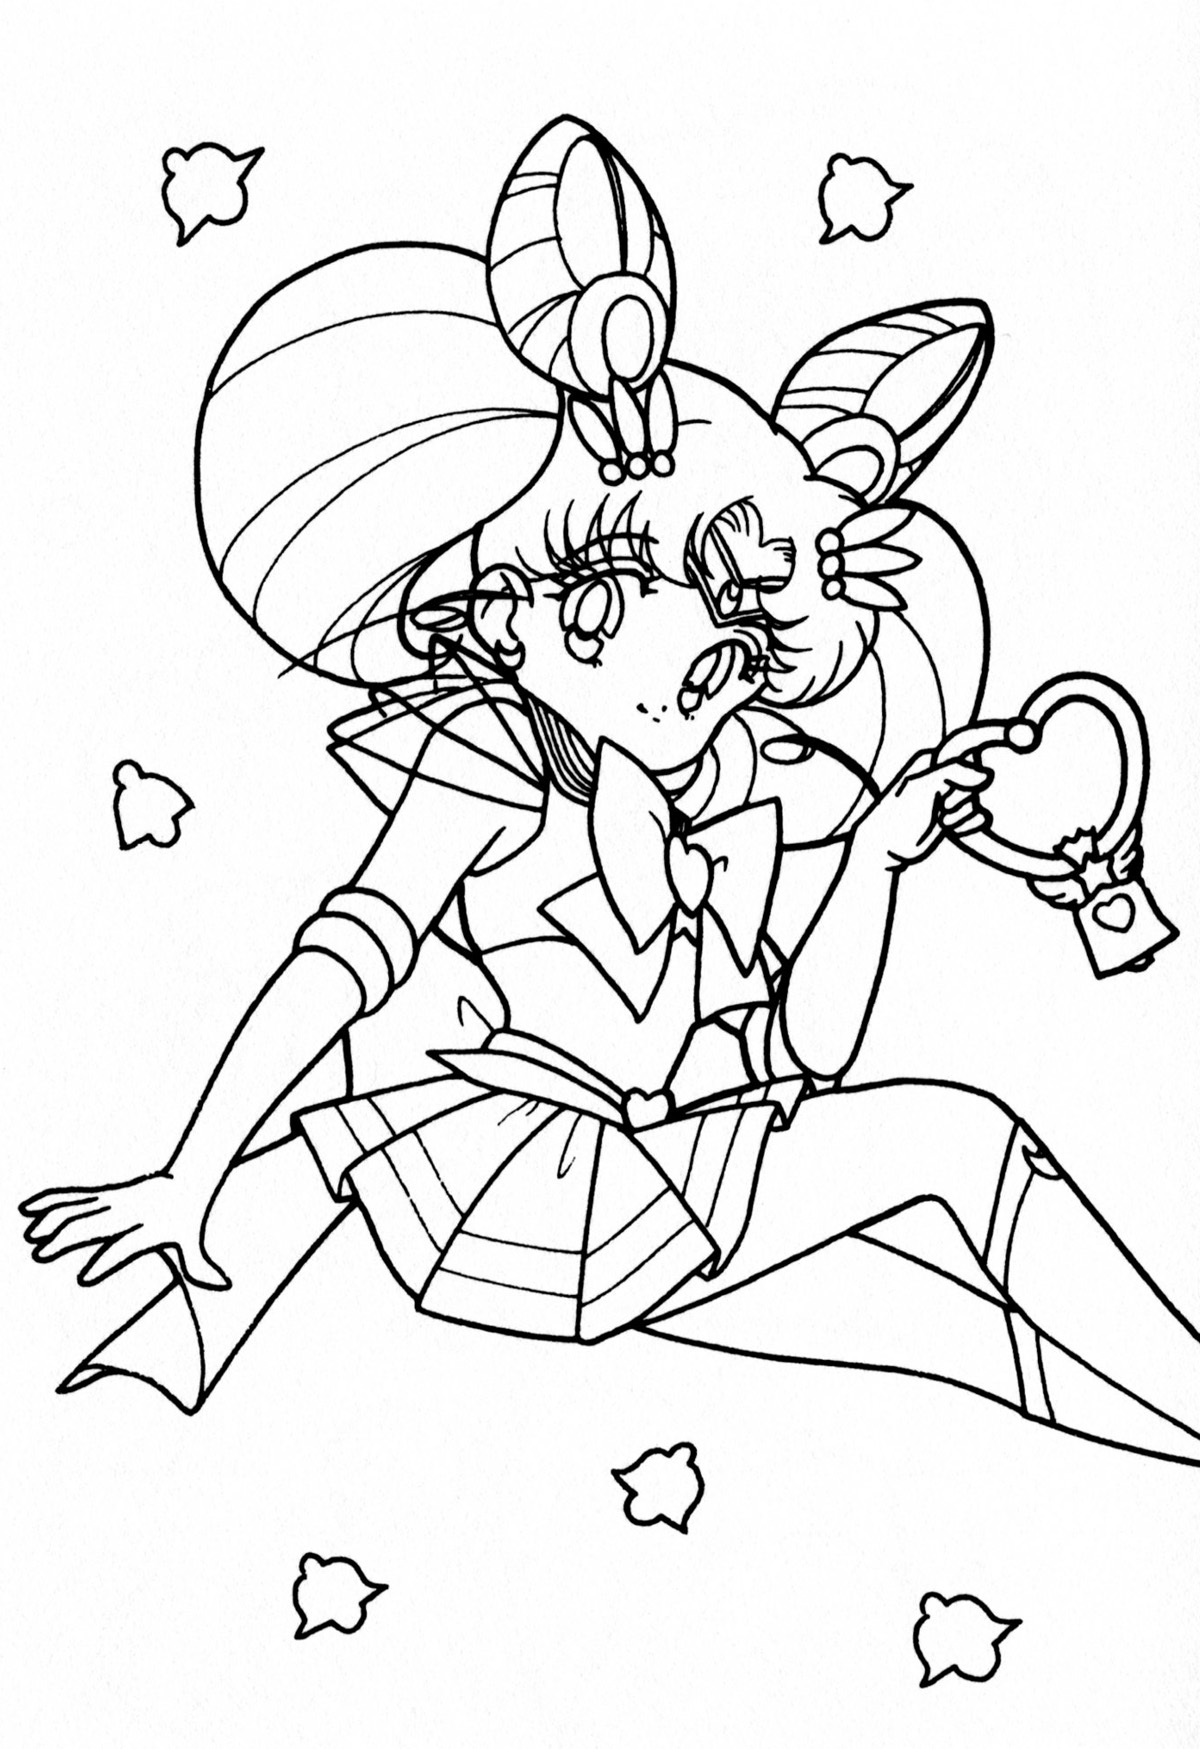 chibi moon coloring pages - photo#3